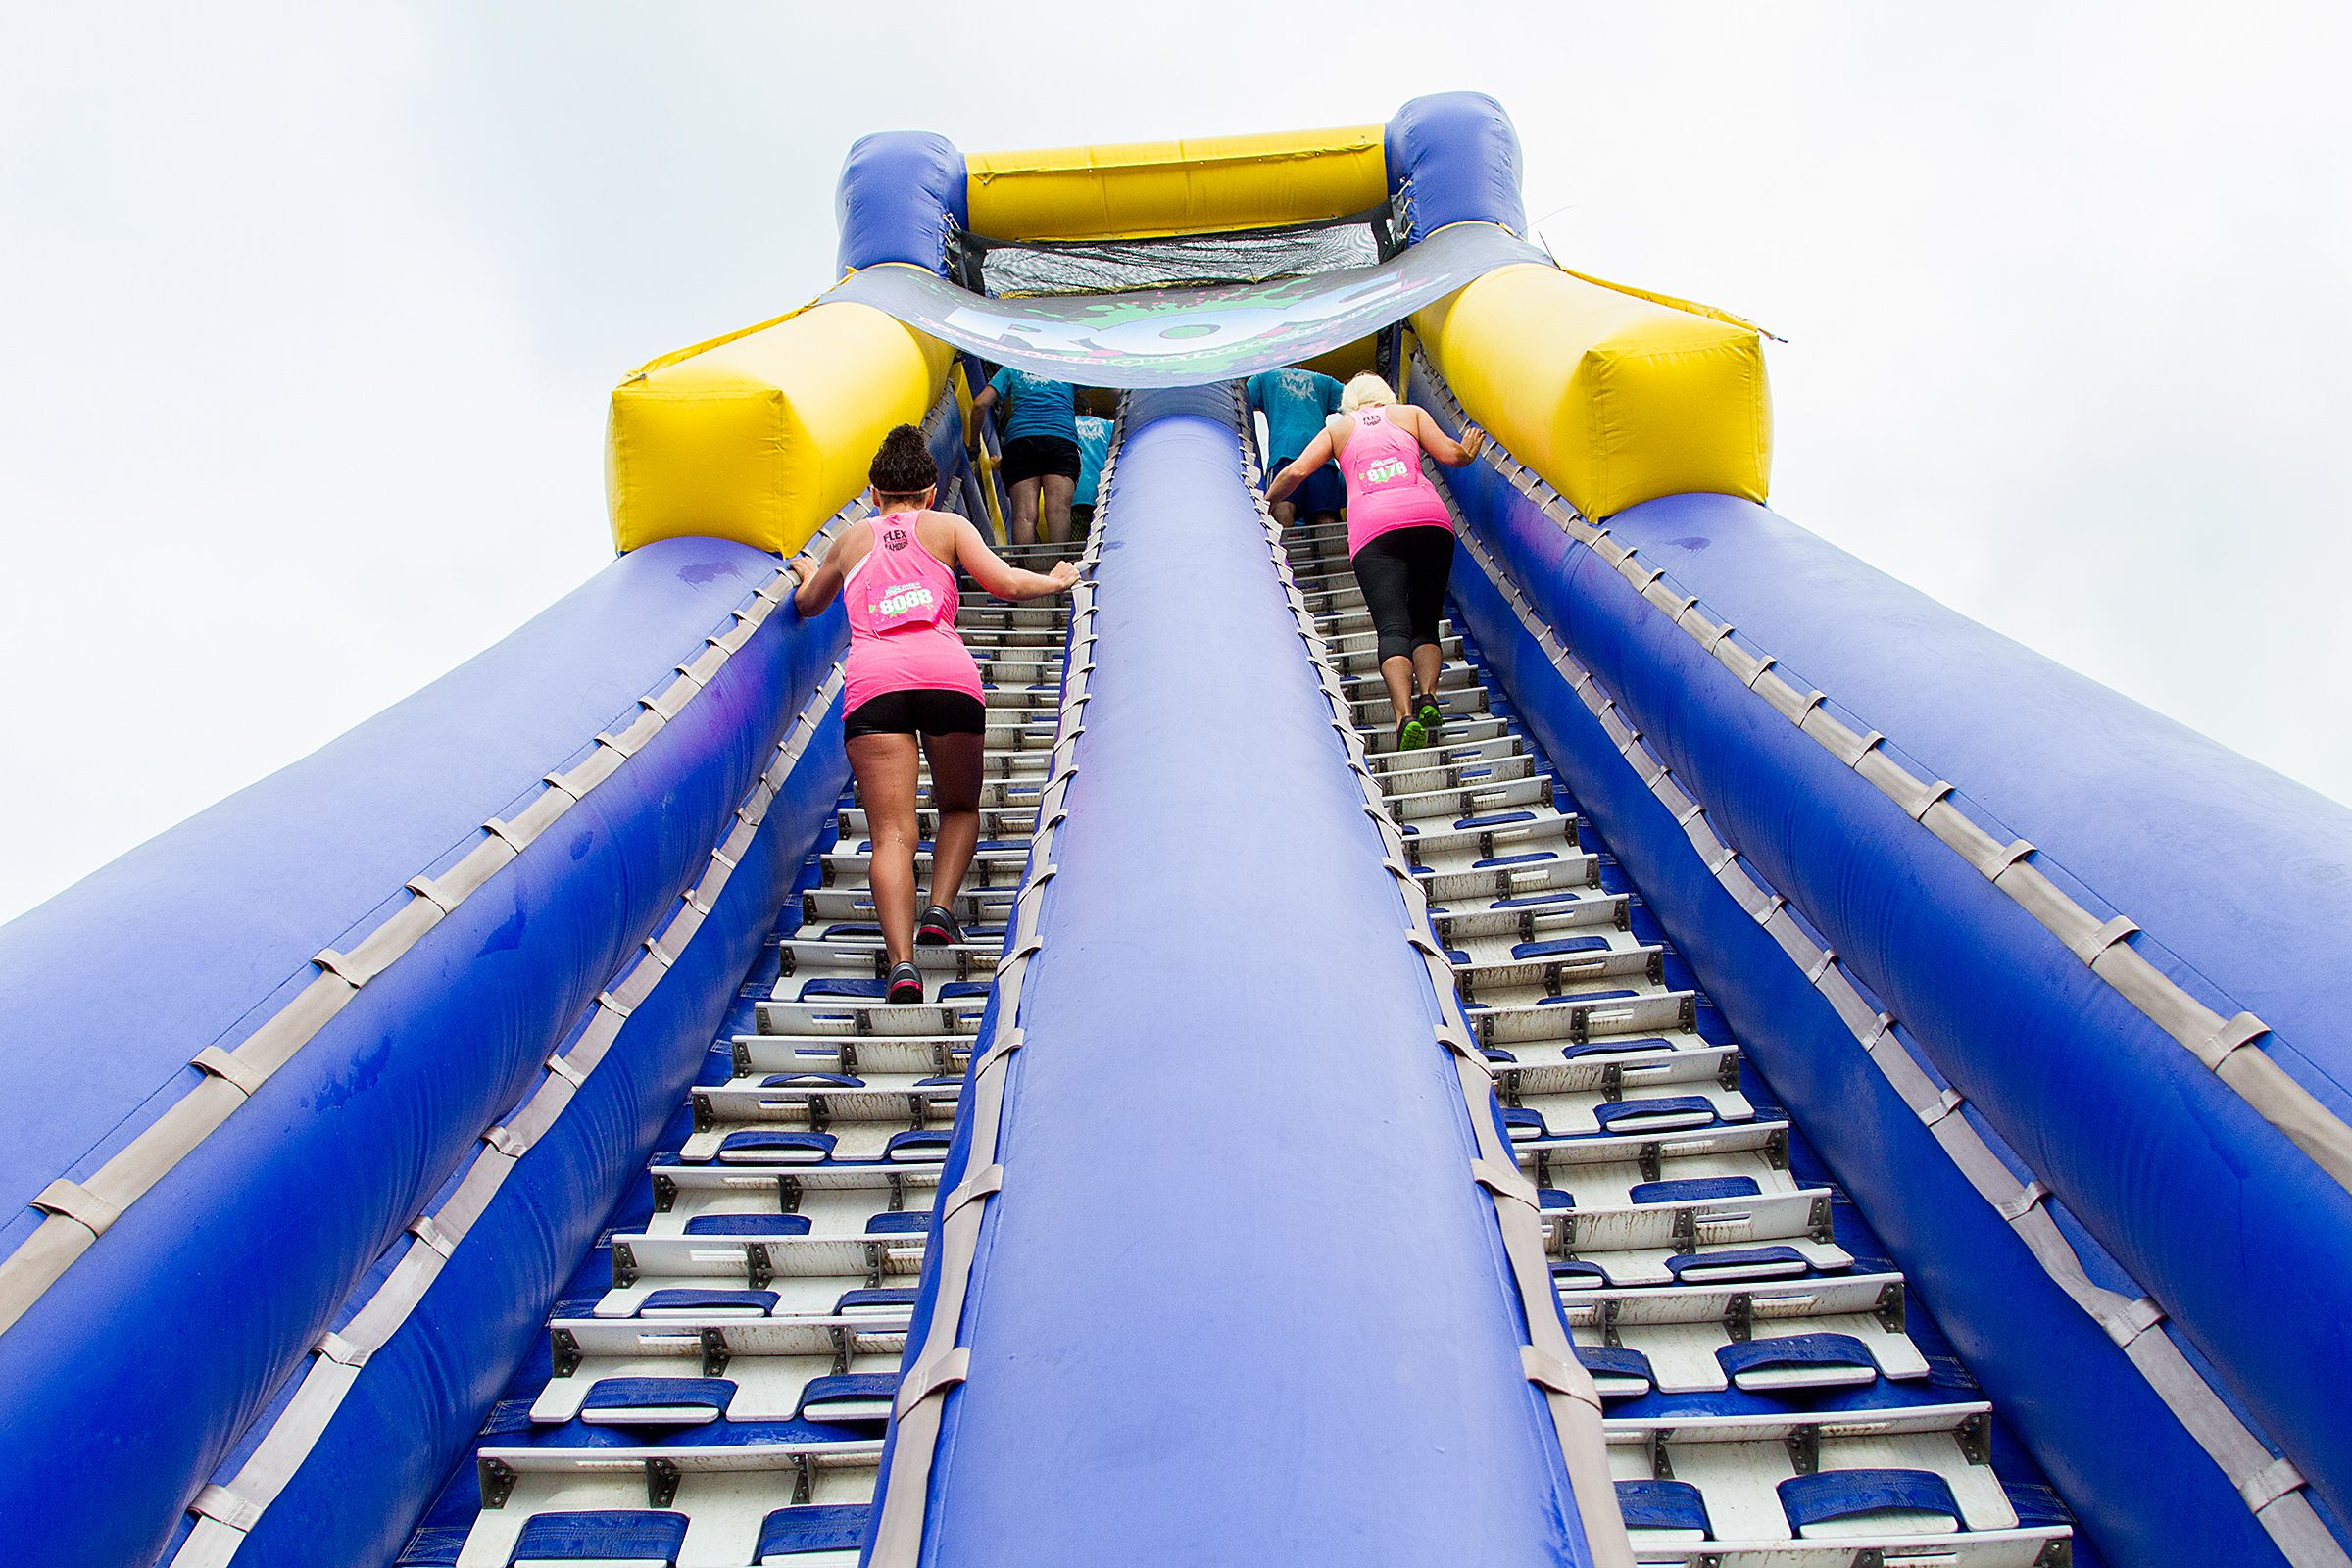 Tallest inflatable water slide in the world rocrace - Tallest swimming pool in the world ...